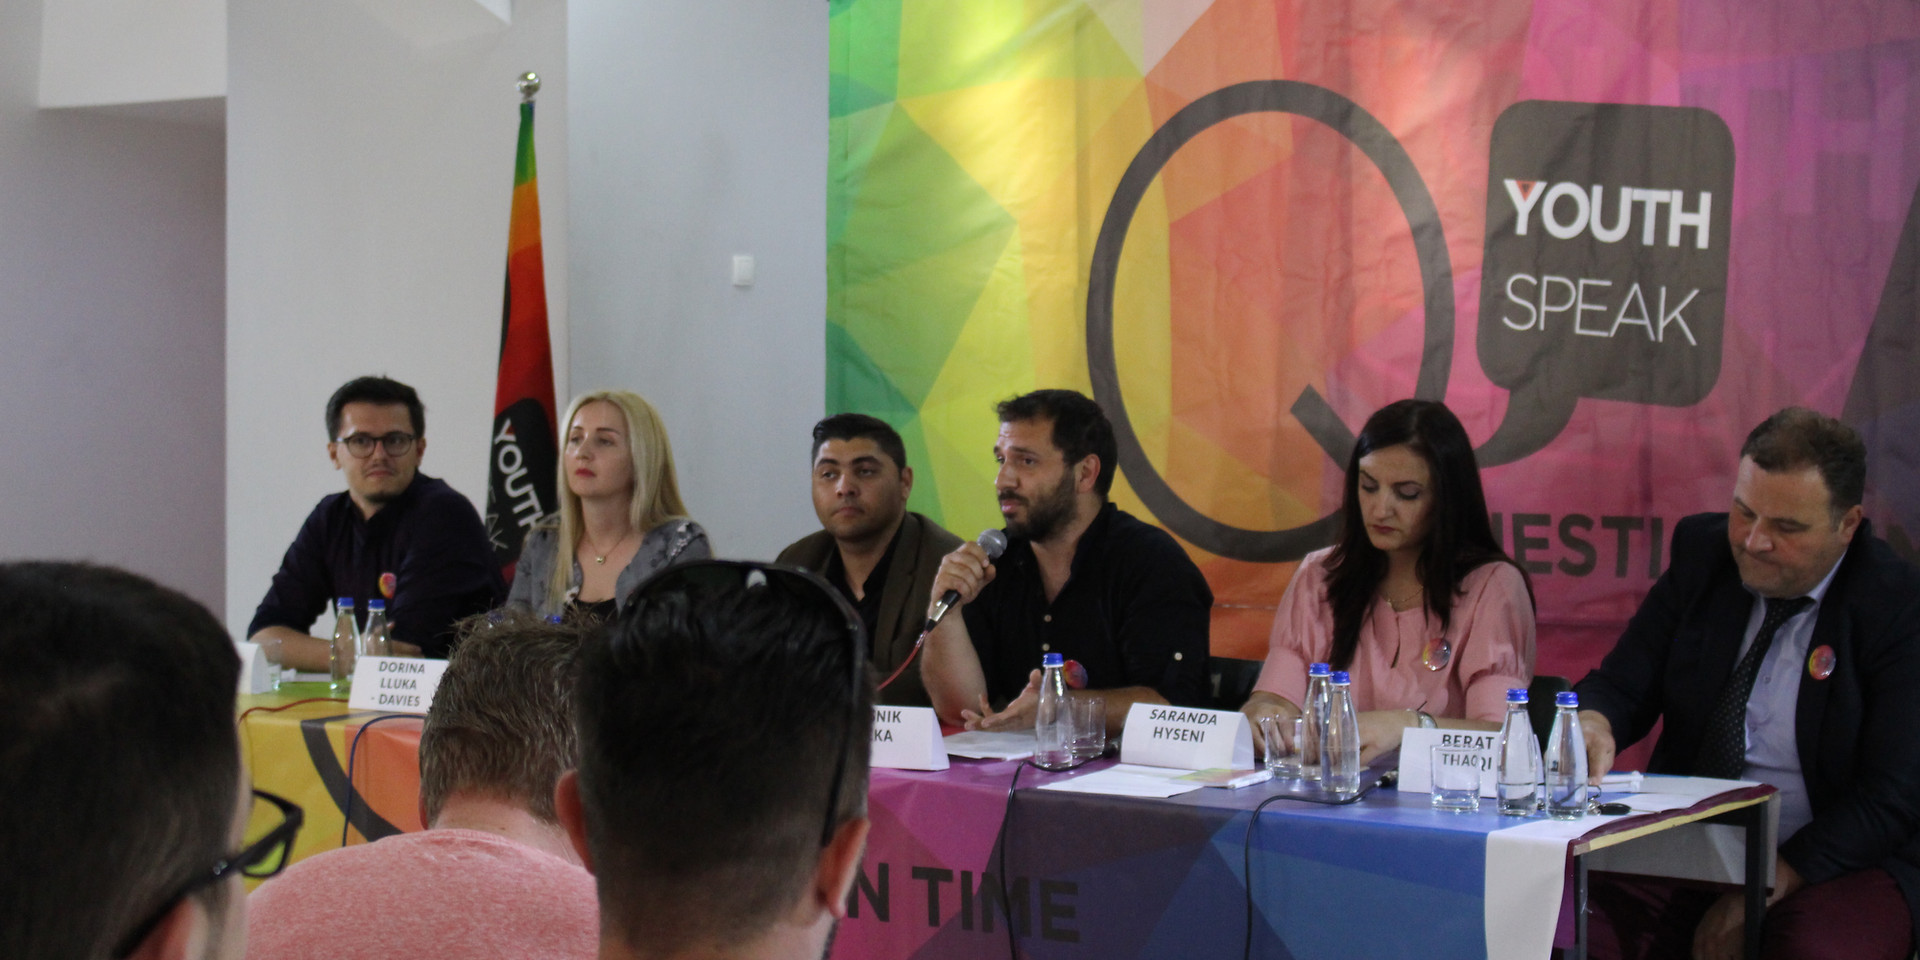 Youth Speak - Question Time